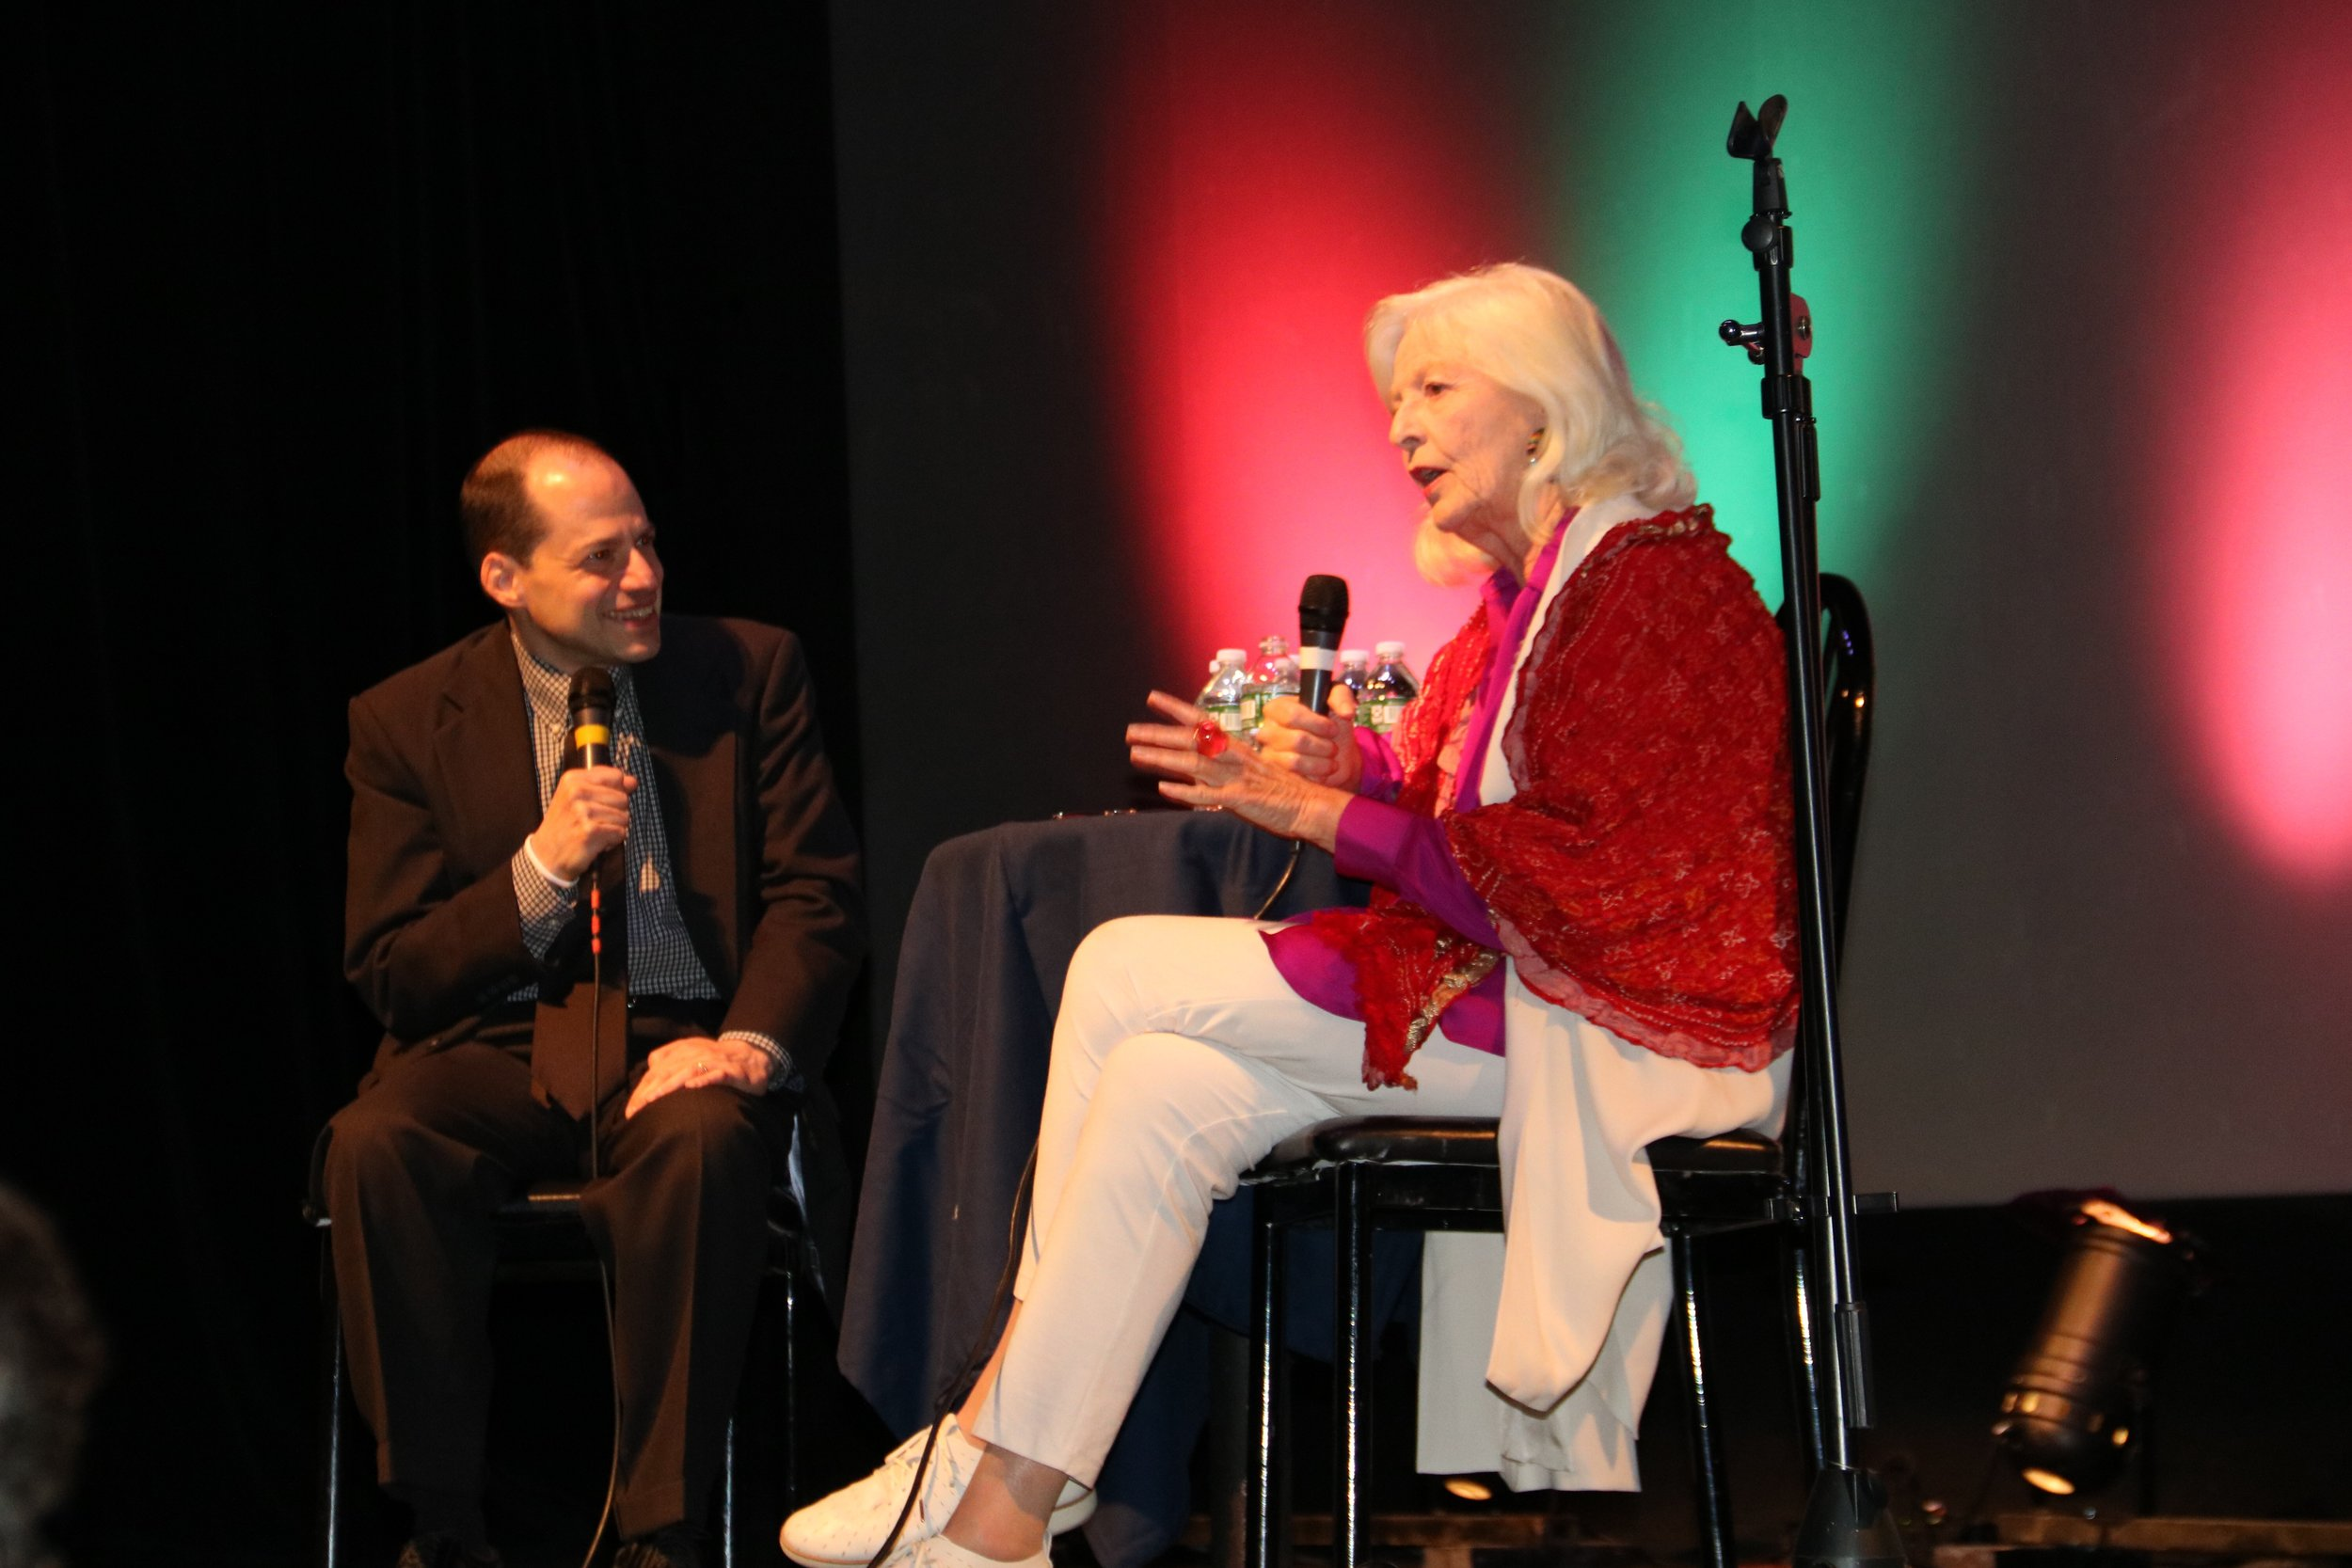 John Dileo interviewing jane alexander at the 2018 festival -